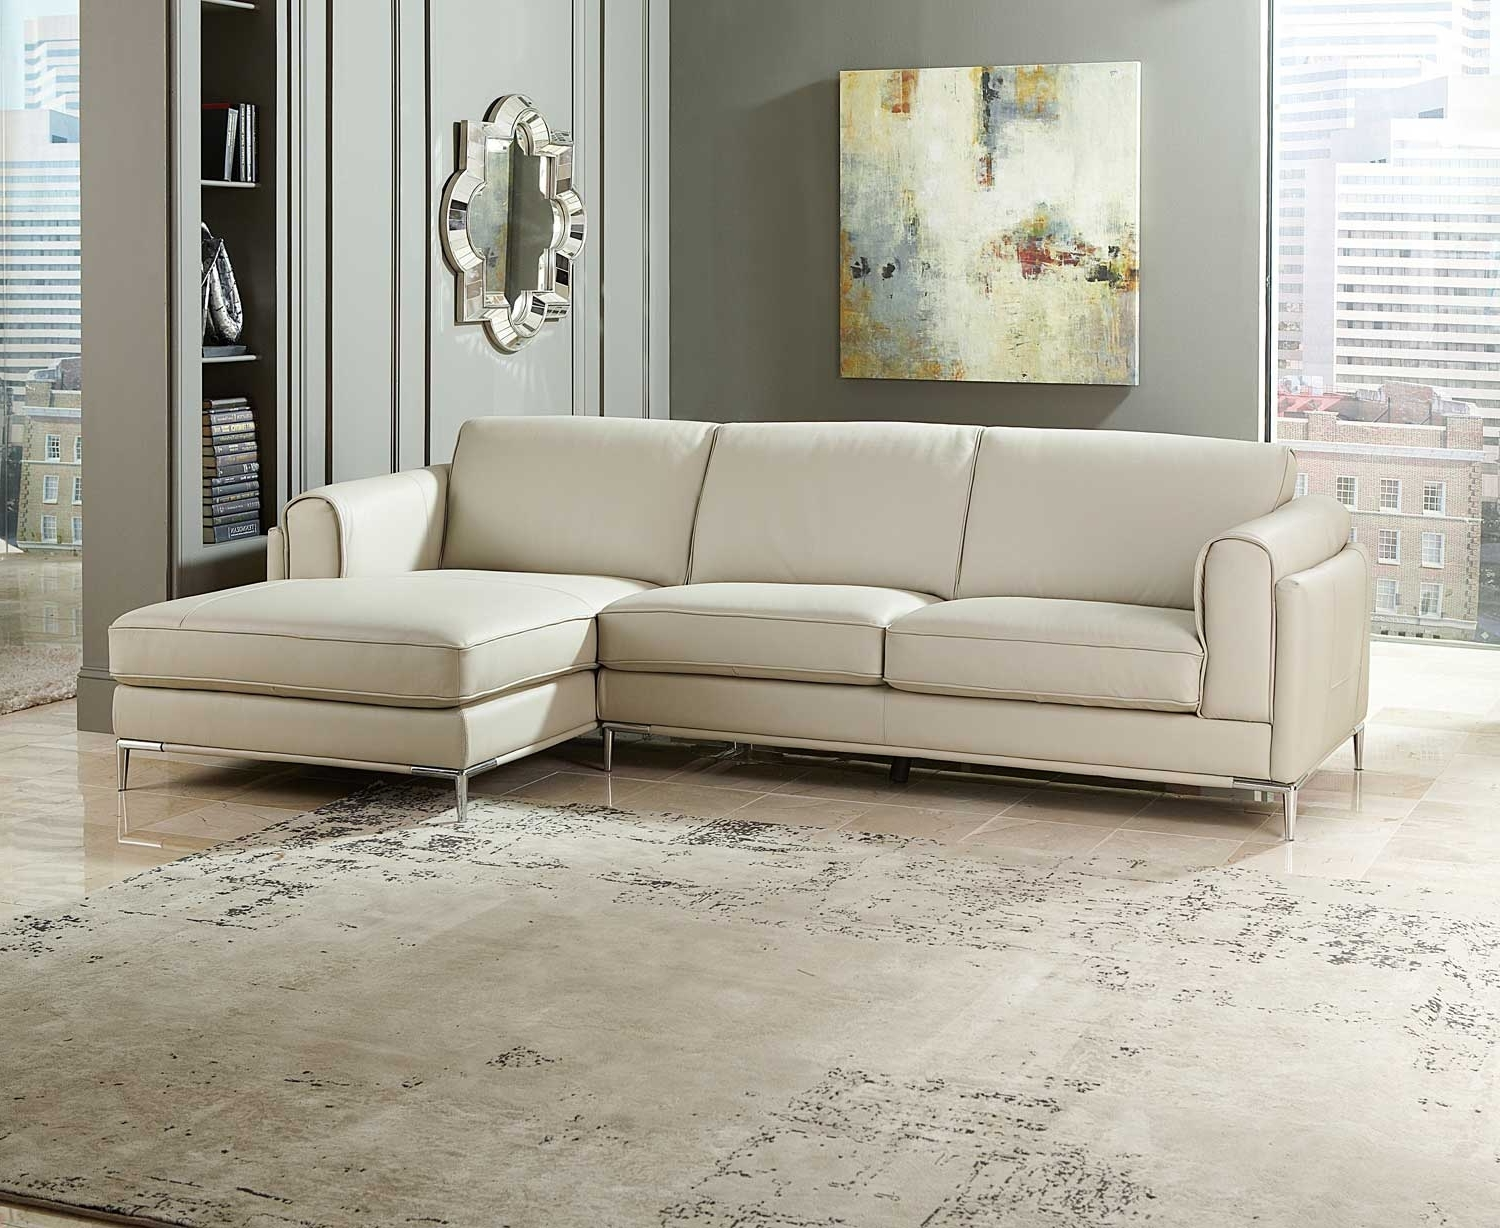 Preferred Homelegance Hugo Sectional Sofa – Beige Top Grain Leather & Split For Beige Sectional Sofas (View 18 of 20)